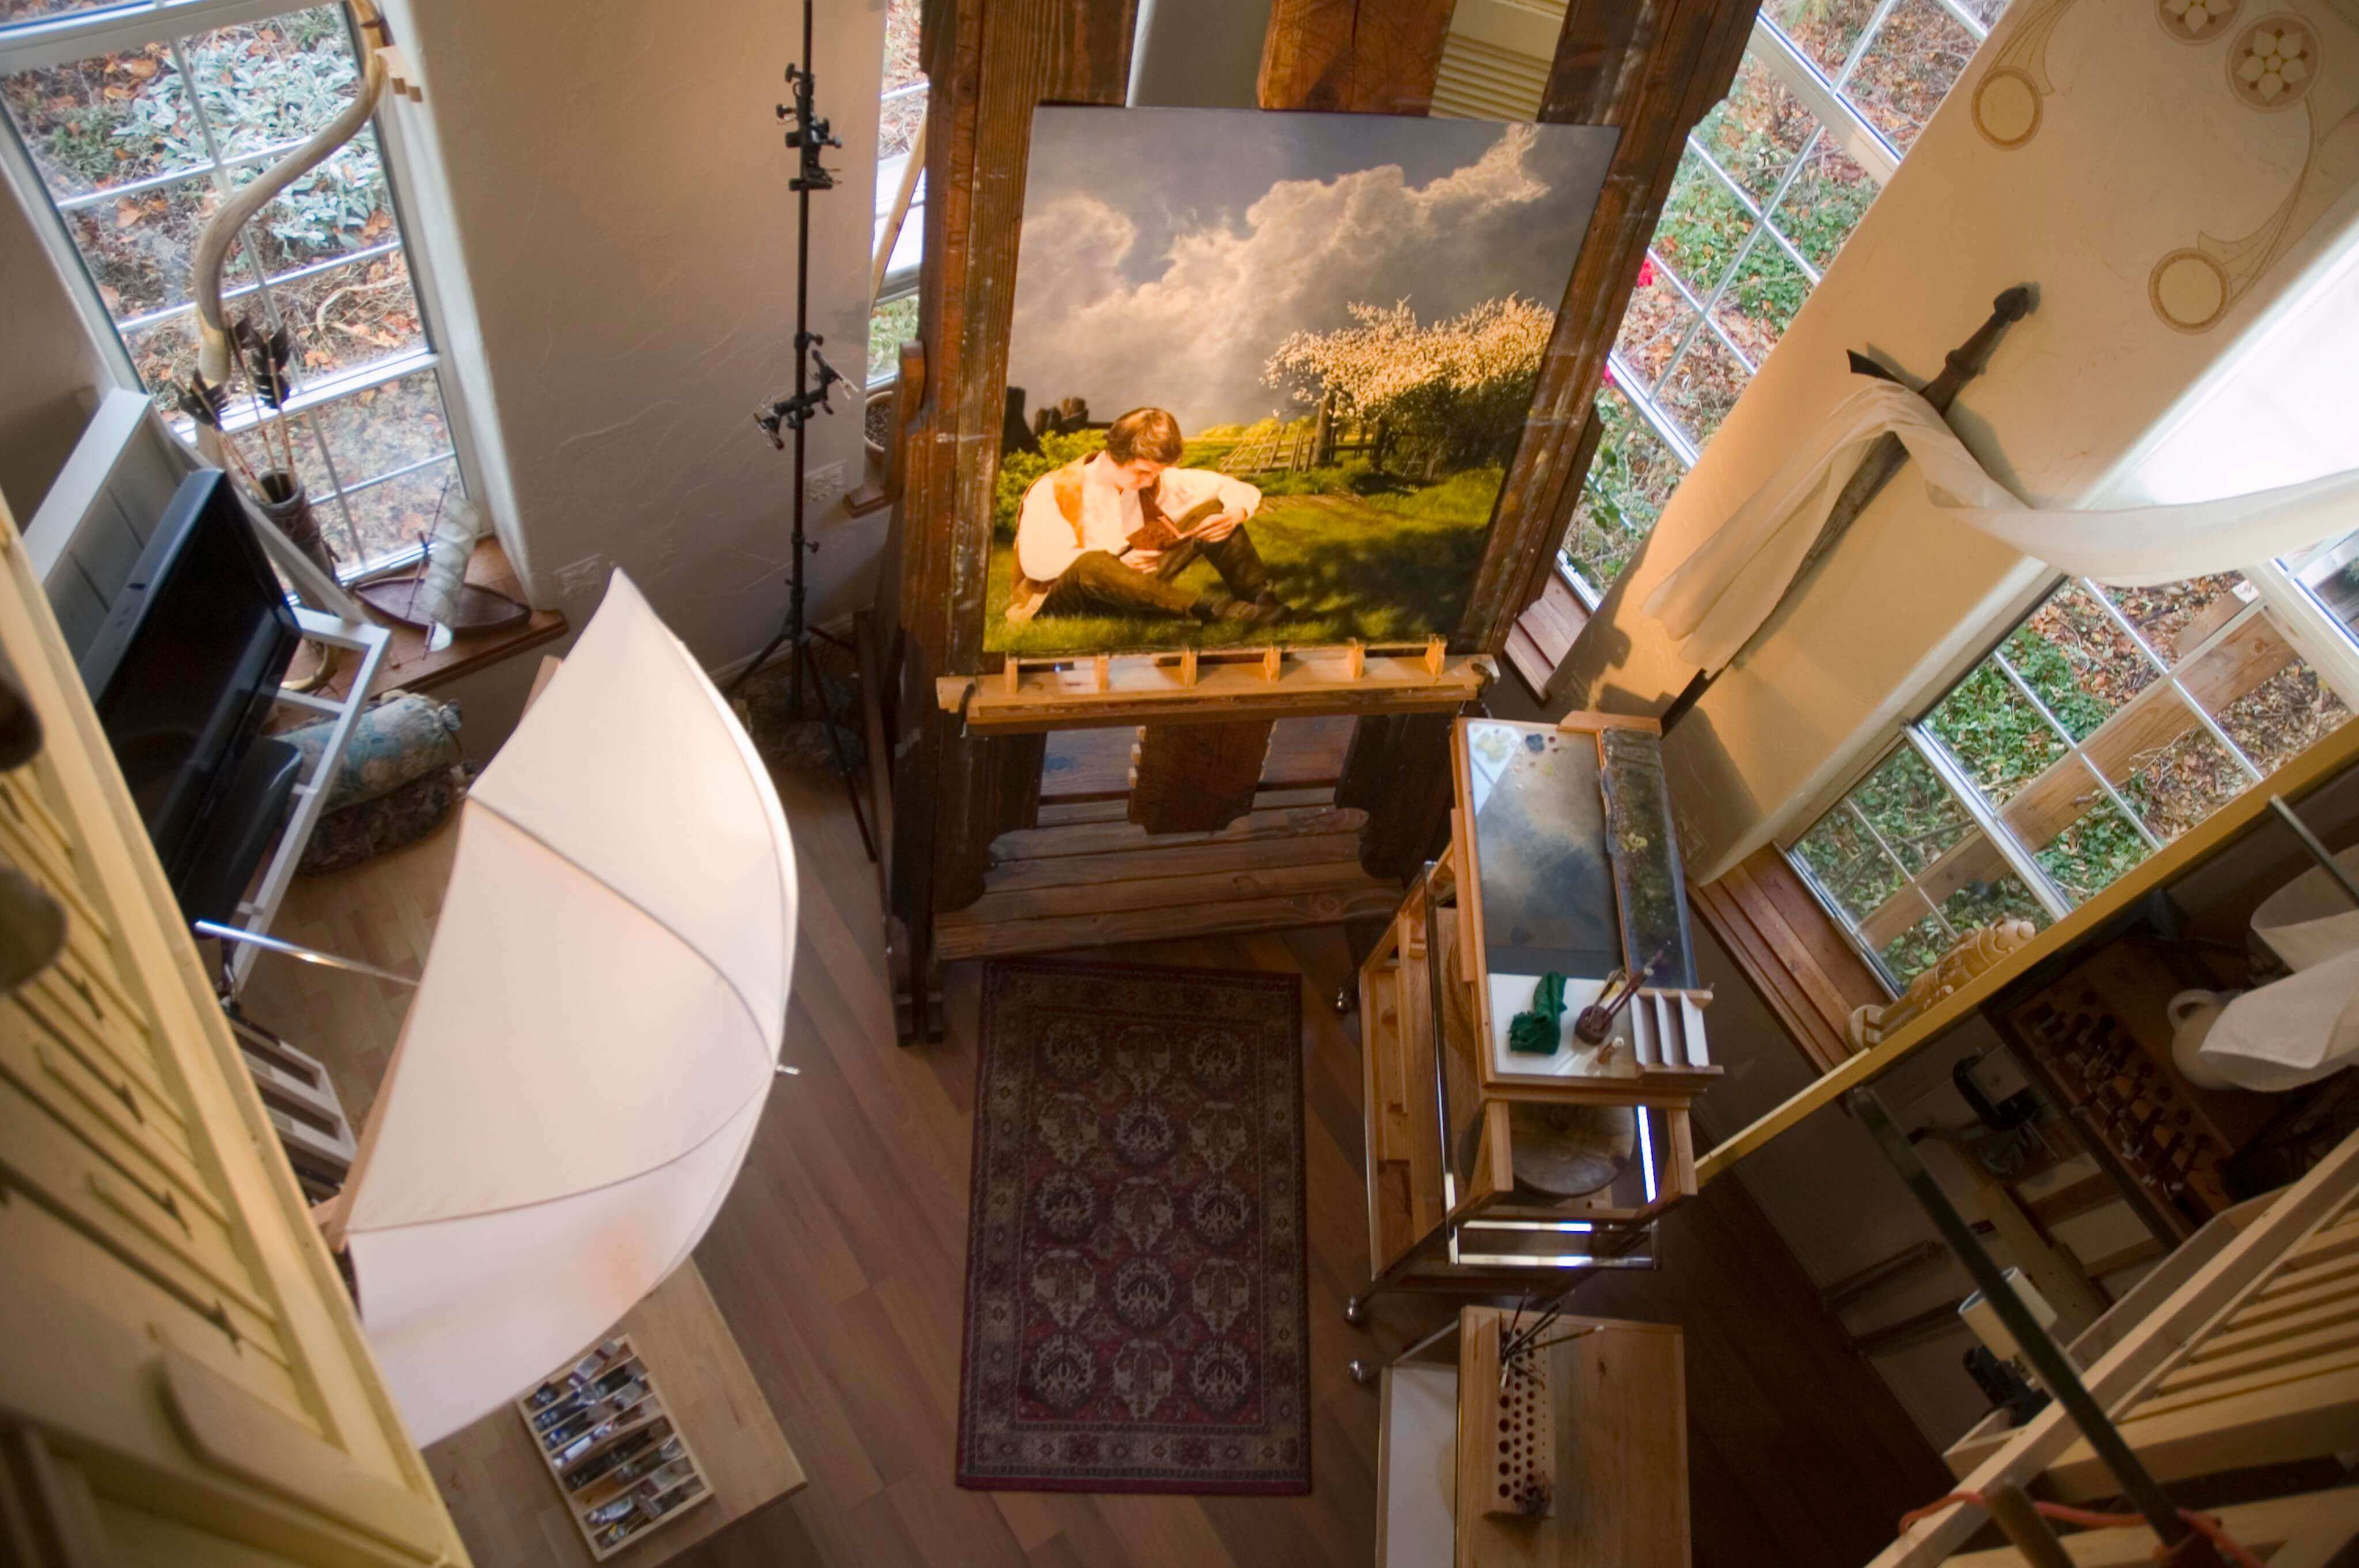 Looking down into the studio during a painting session near the end of the project.